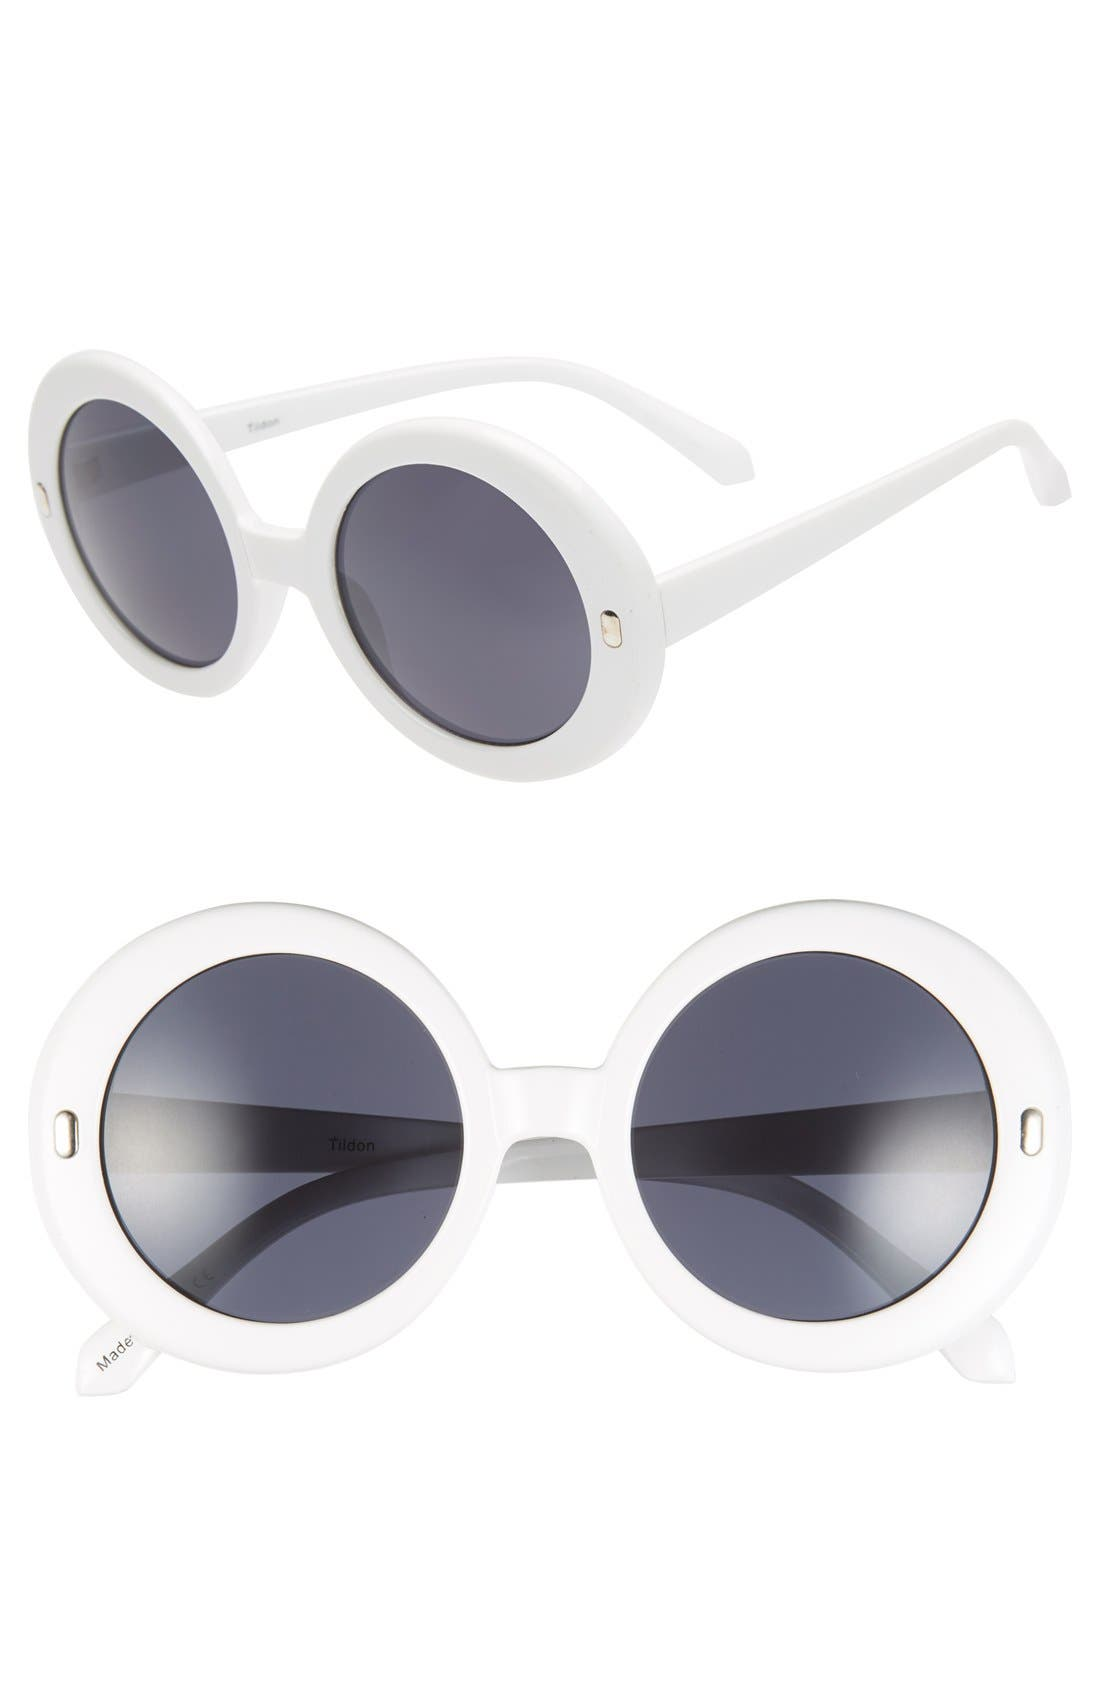 Main Image - Tildon 60mm Round Sunglasses